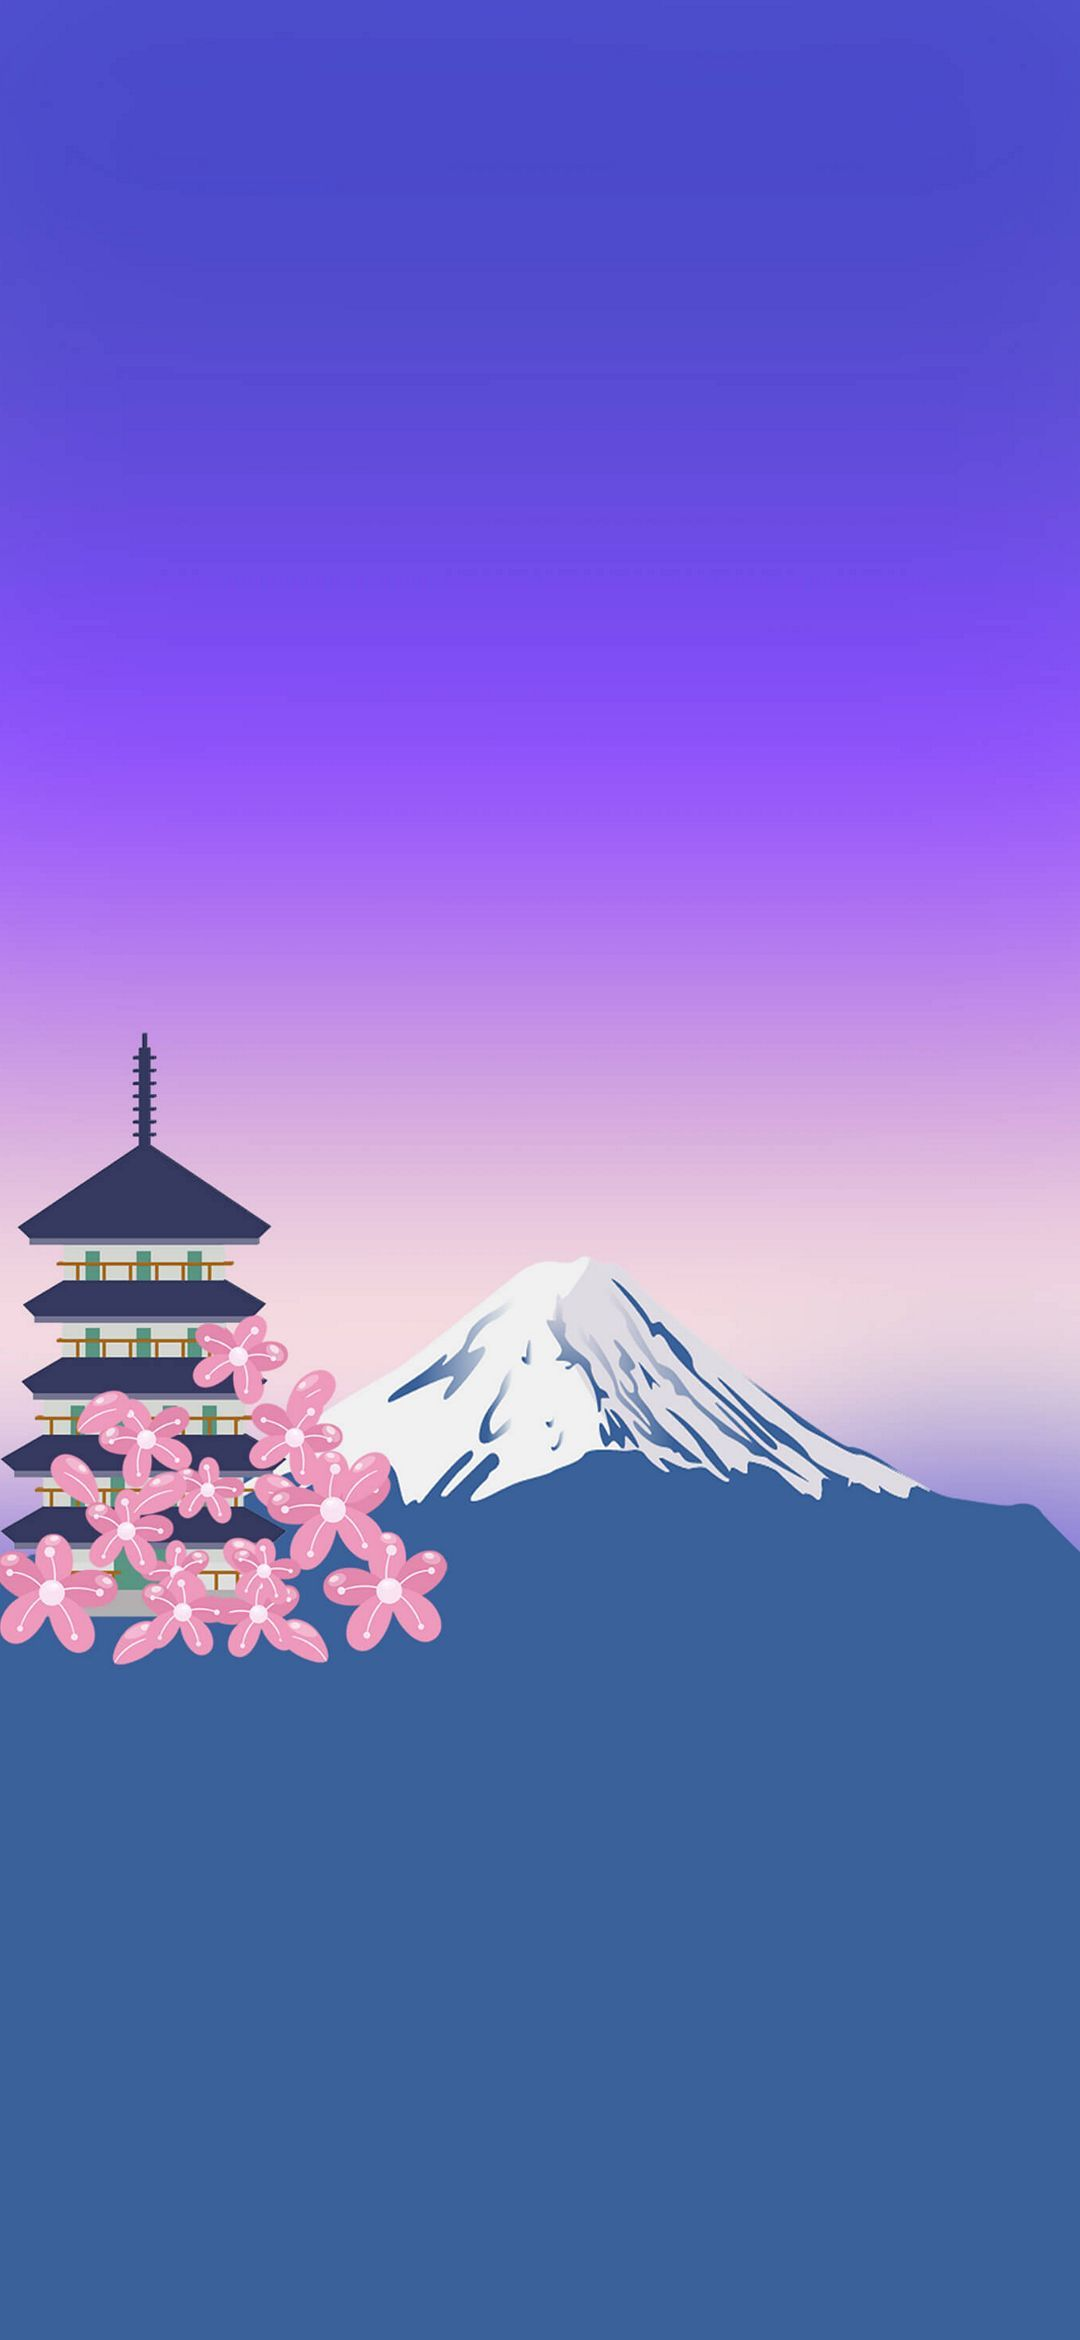 Japan Minimal Wallpaper 1080X2340 in 2020 | Minimal ...